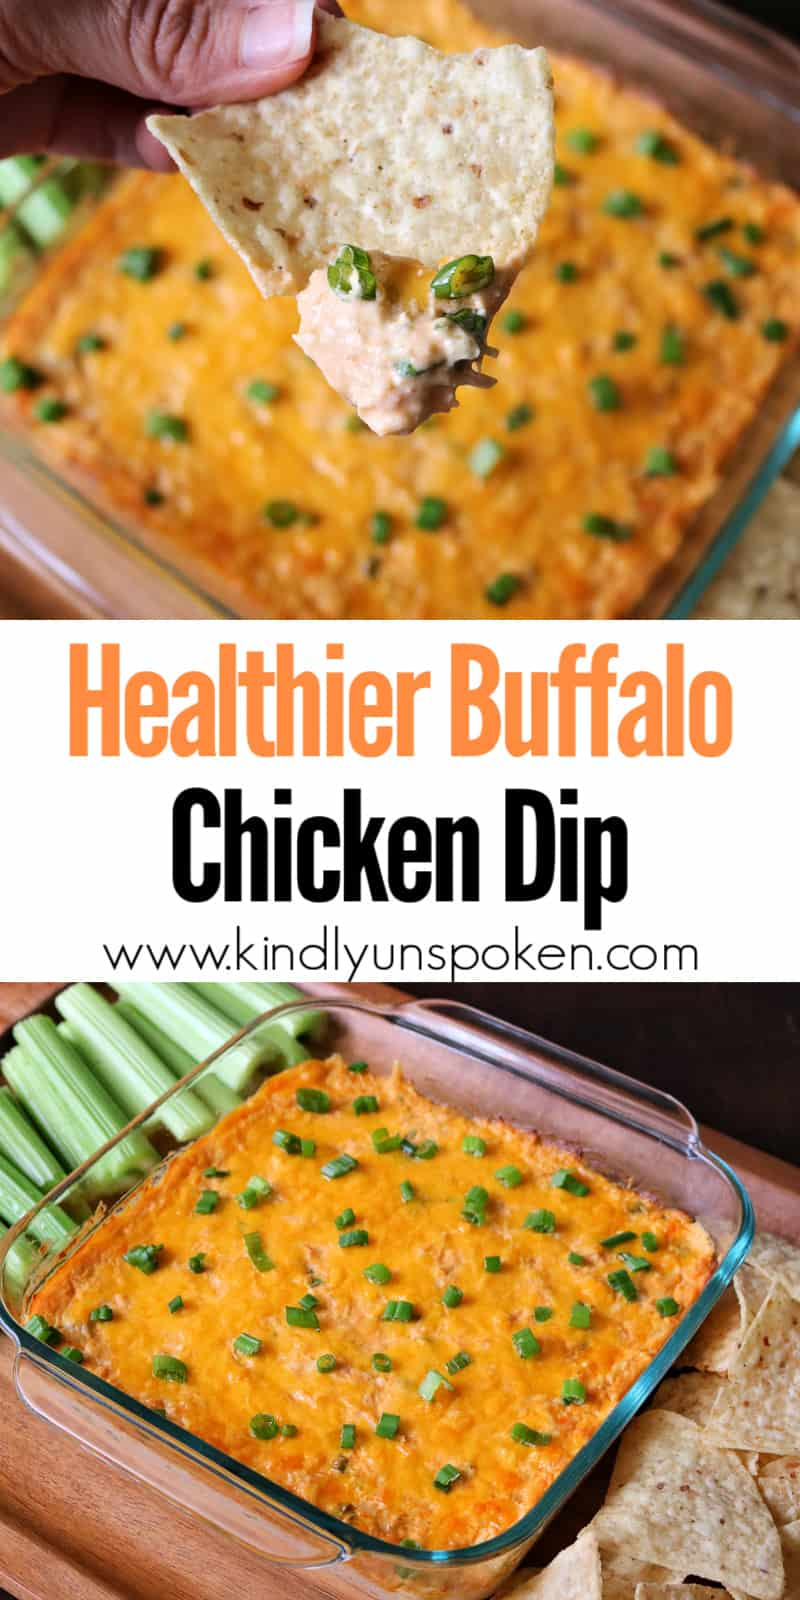 This Healthy Buffalo Chicken Dip is easy, delicious, and full of flavor! This lightened up version is made with shredded or canned chicken breast, light cream cheese, mozzarella cheese, fat free Greek yogurt, buffalo hot sauce, green onion, and topped with cheddar cheese. Make this Skinny Buffalo Chicken Dip for your next party, game day, or Super Bowl appetizer. #buffalochickendip #healthydip #healthyappetizer #superbowlappetizer #partyappetizer